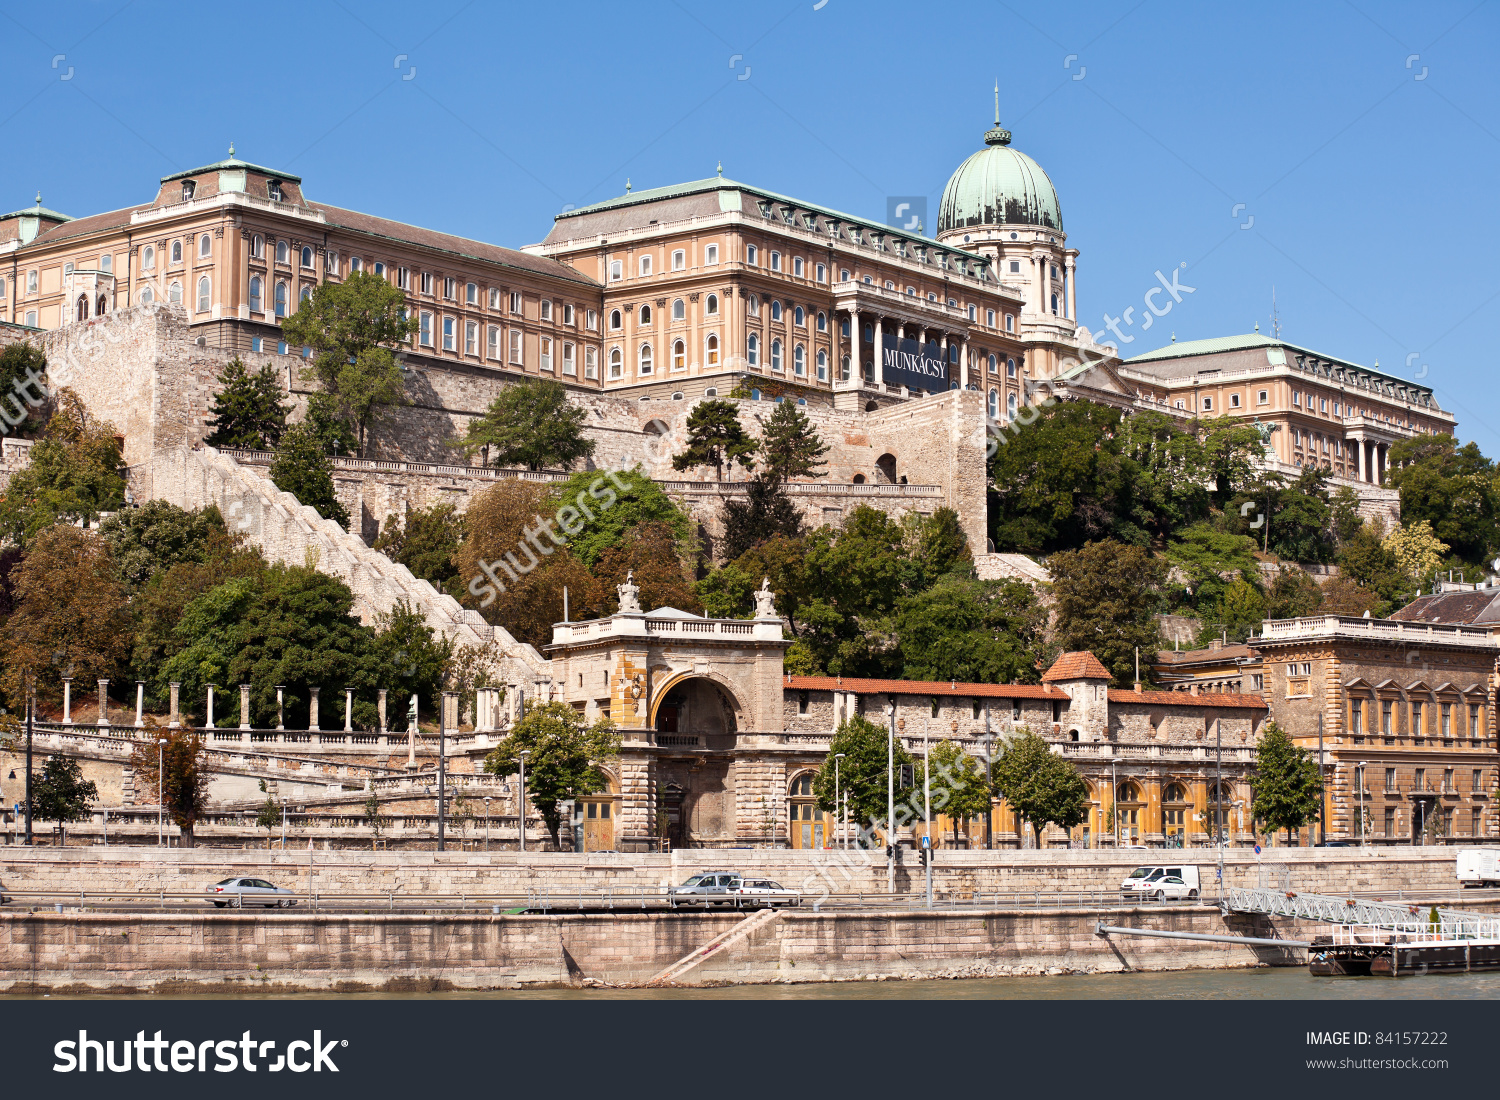 View Of Buda Castle In Budapest From Danube River Stock Photo.